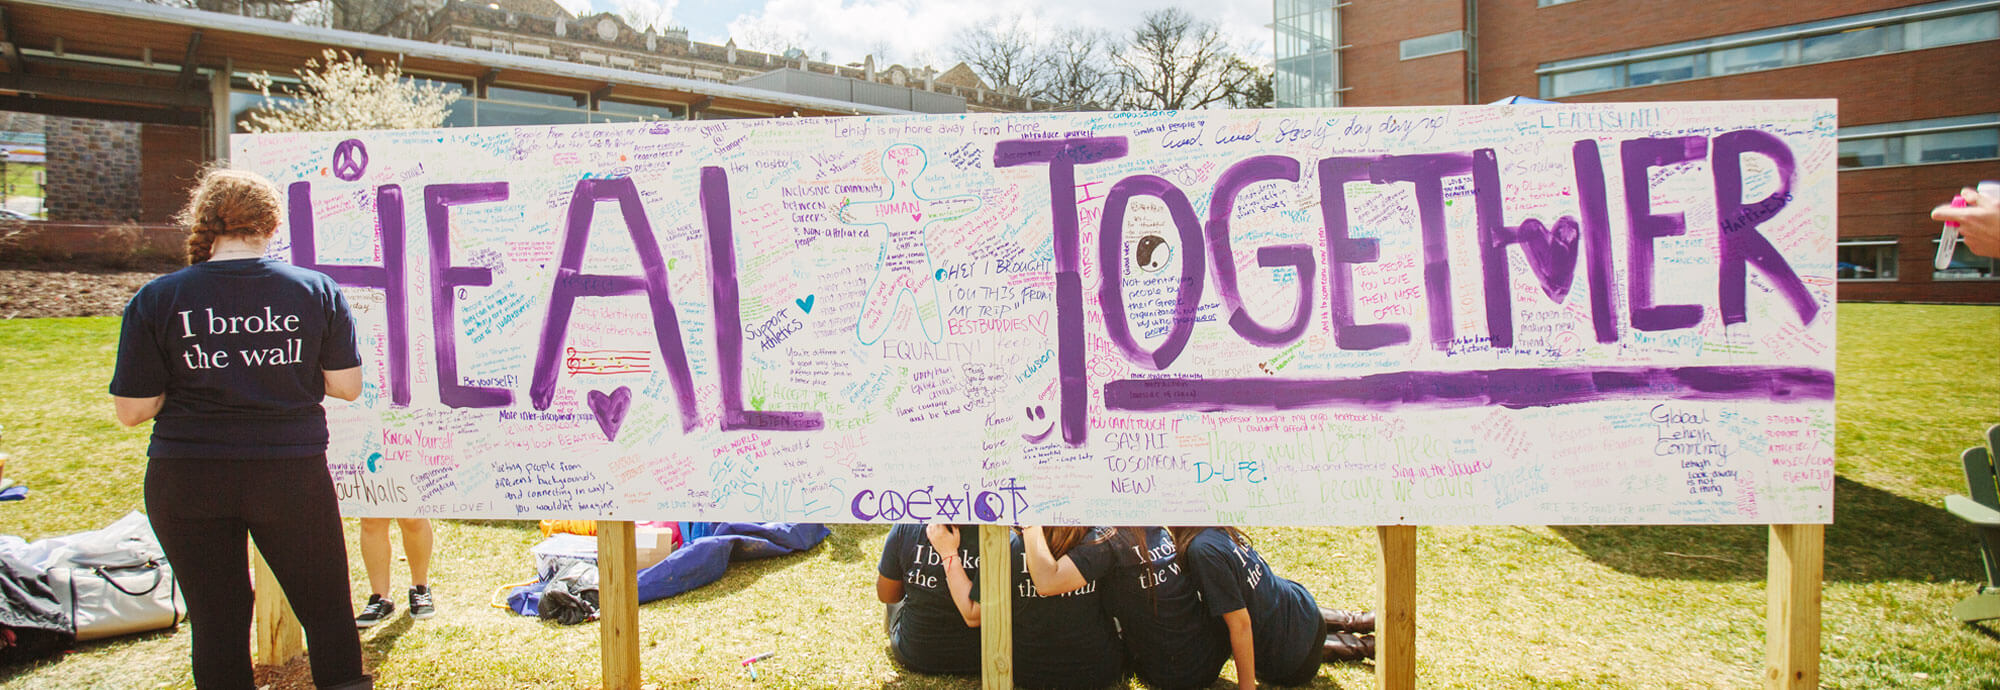 Heal Together sign